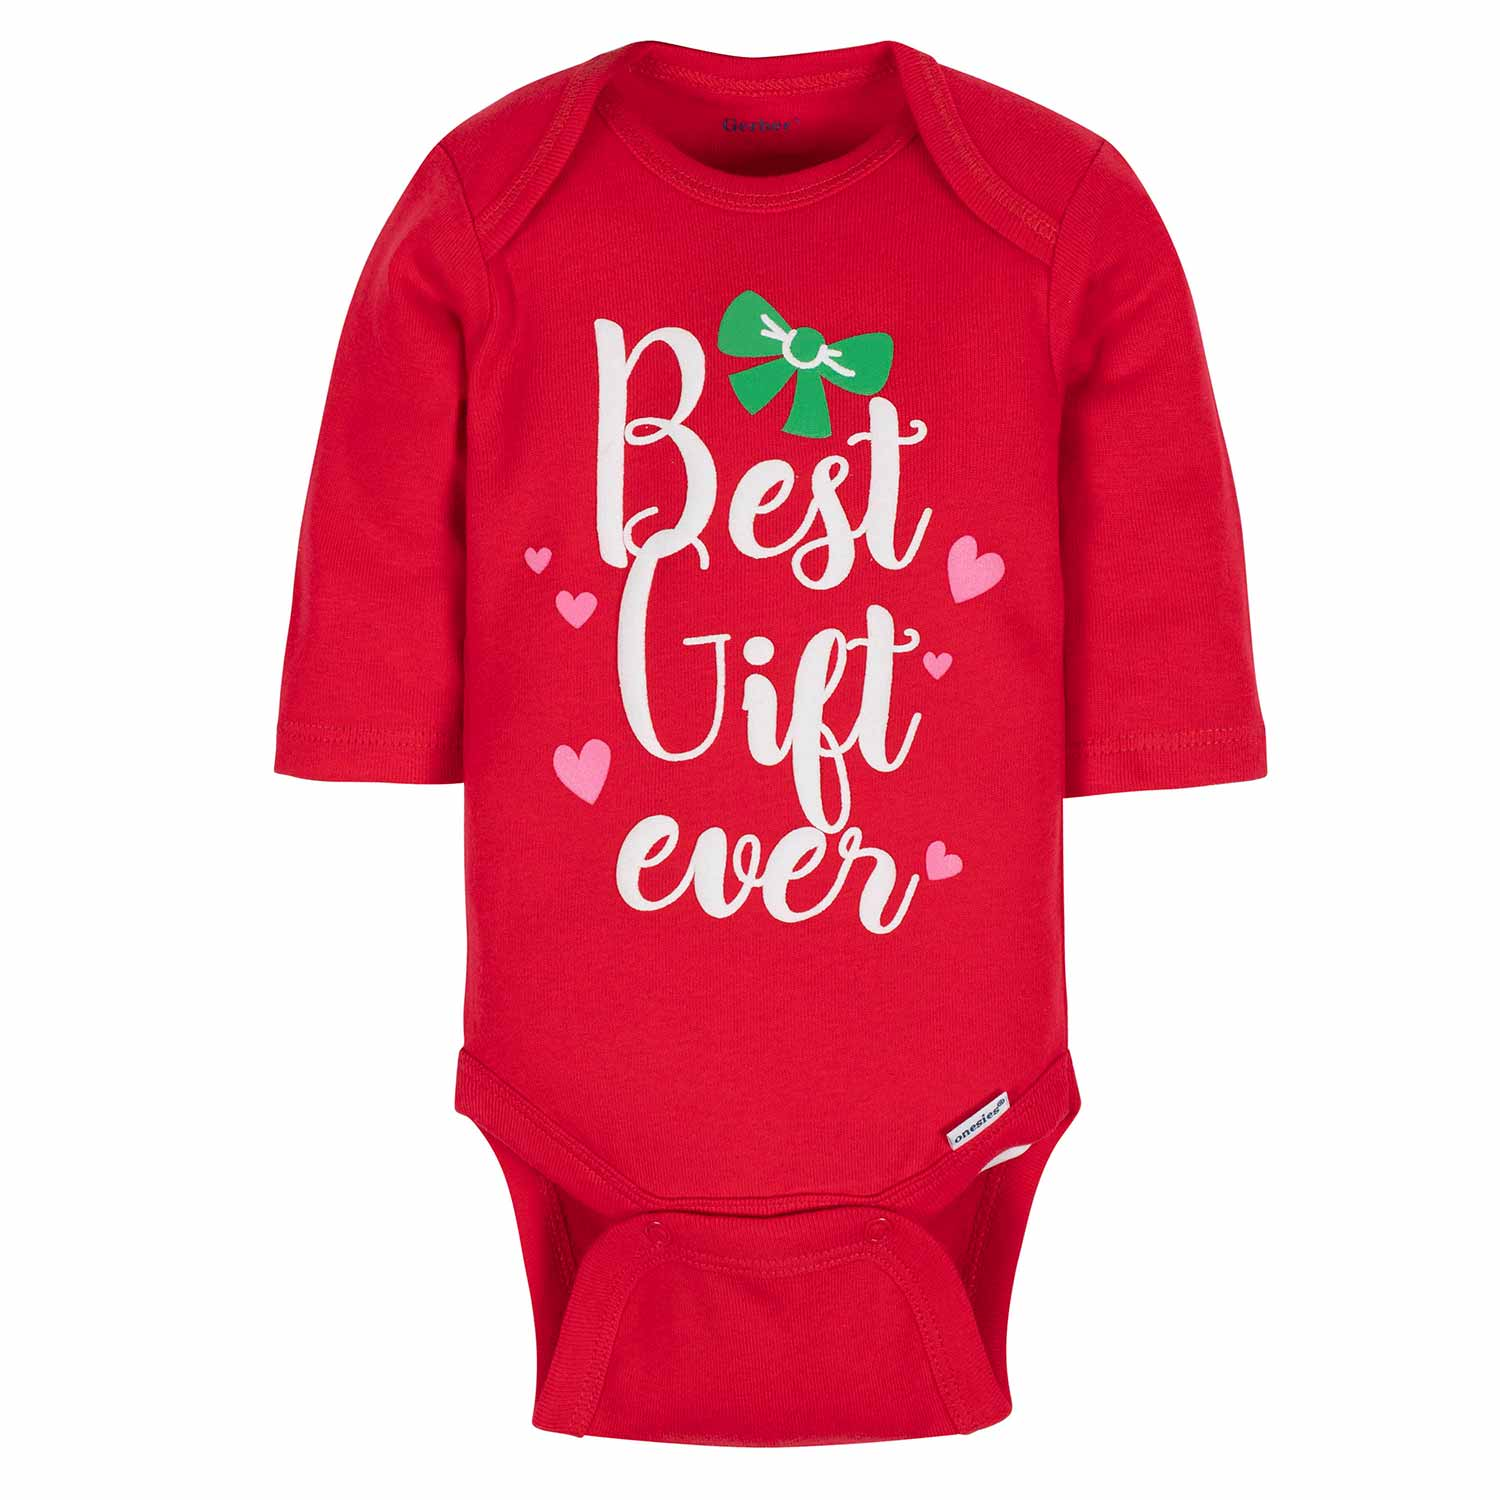 Gerber® 3-Pack Baby Girls Holiday Gift Long Sleeve Onesies® Bodysuits